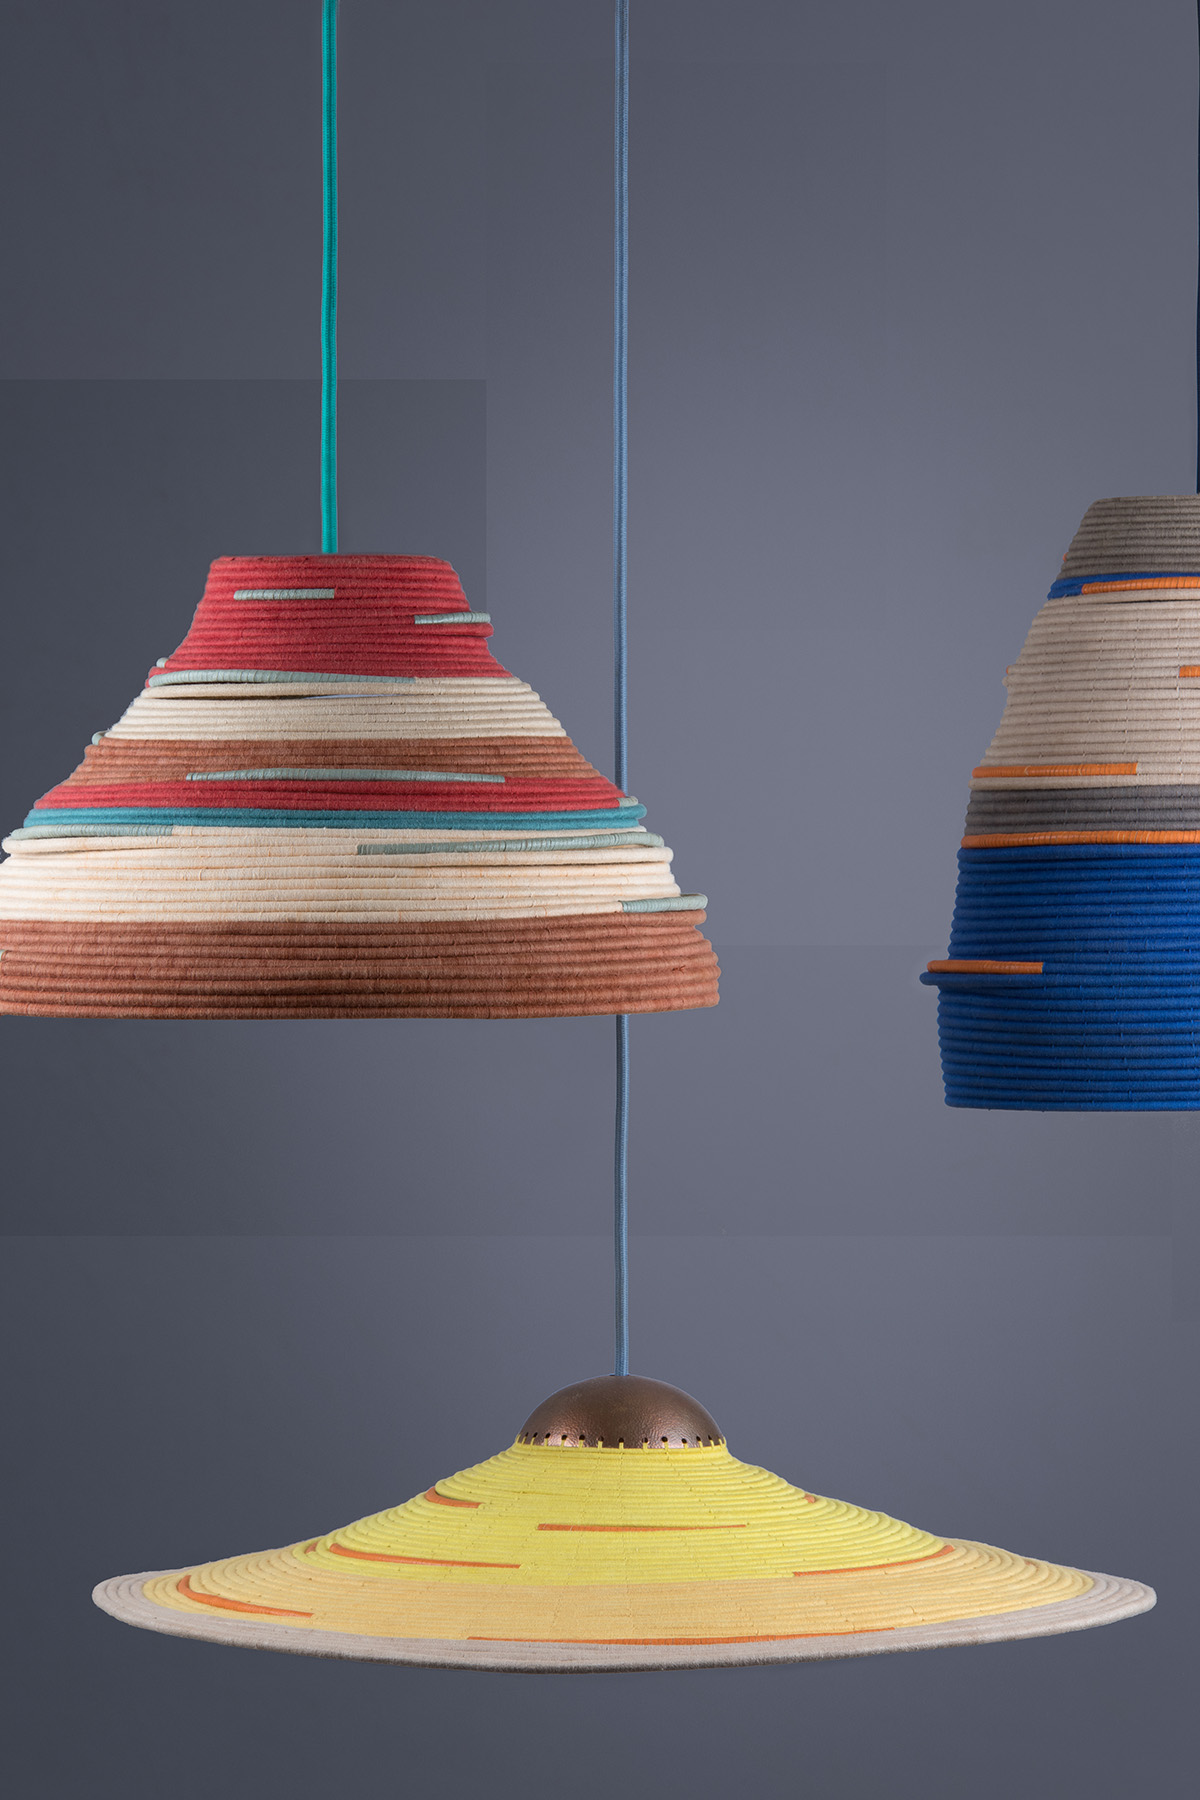 - Each lamp is handcrafted, making every piece unique, which we believe is the magic of handmade products.YarnsHand Spun organic cotton yarns.LeatherArtisanal tanned sheep hides from Burkina Faso.MetalsAll metals are hand beaten and pattern variations are the trademark of individual artisans.